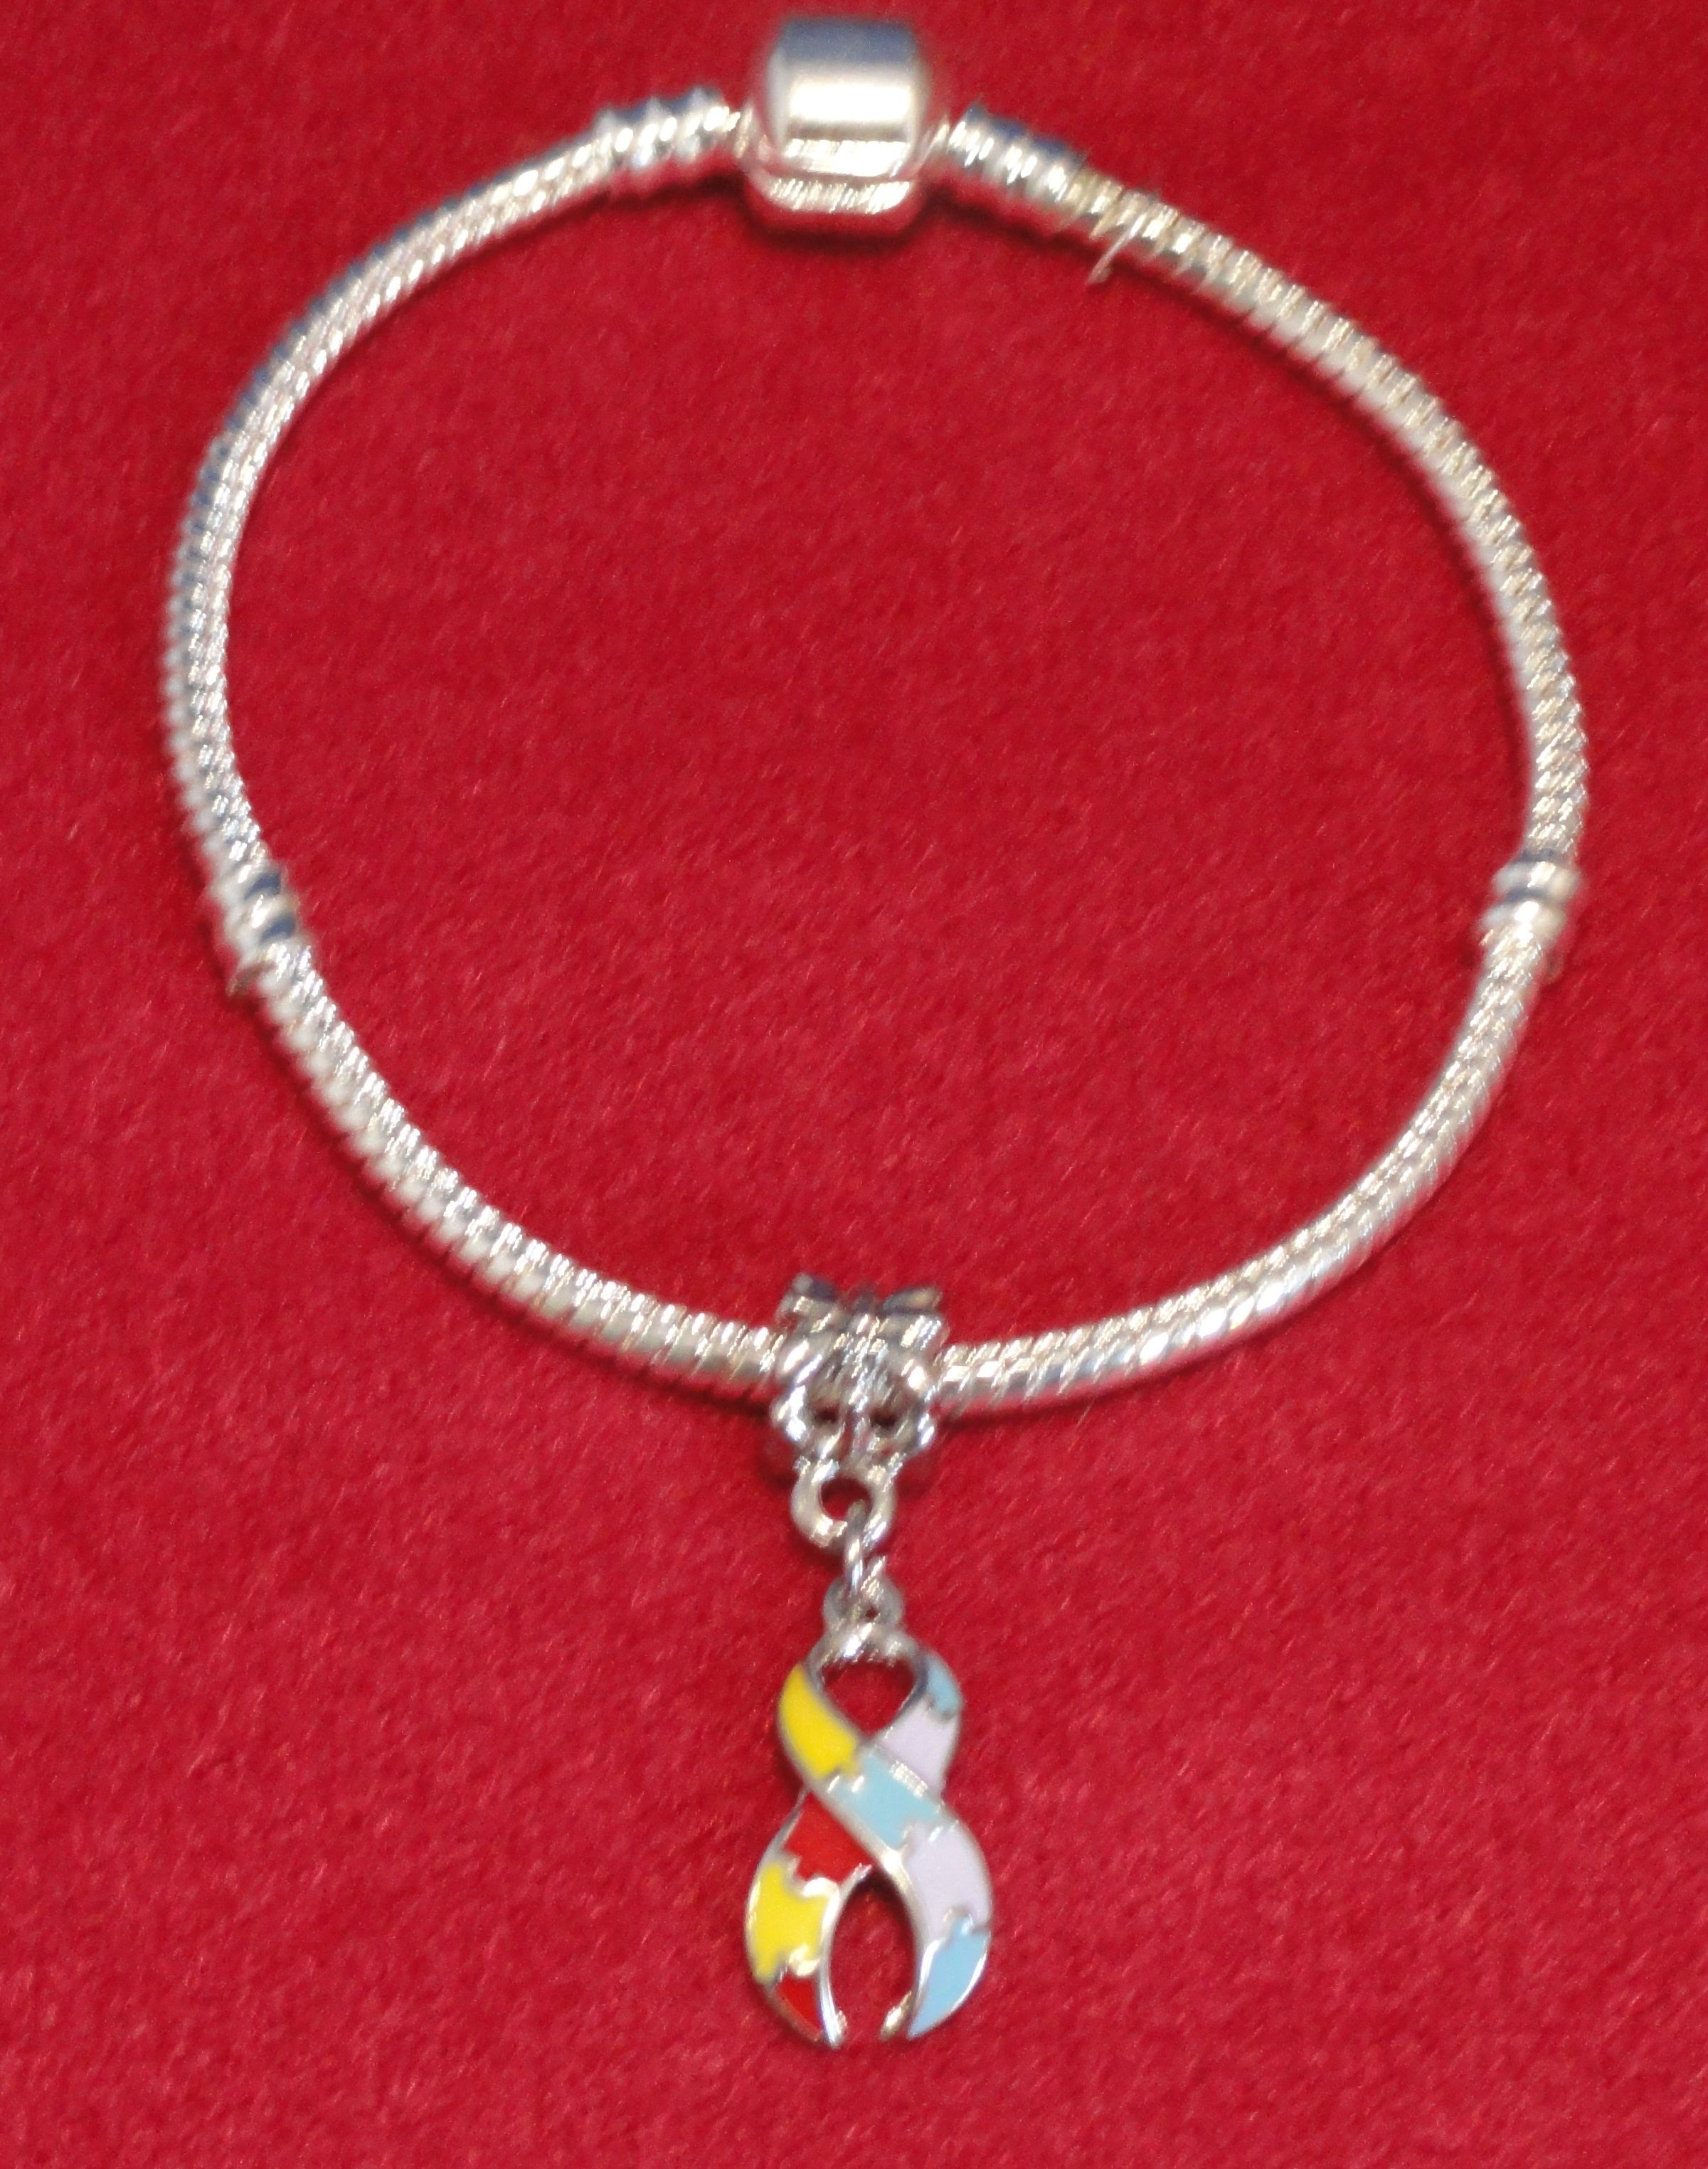 Pandora Style Silver Snake Chain Bracelet With Autism Charm 7 Only 1 Available 9 00